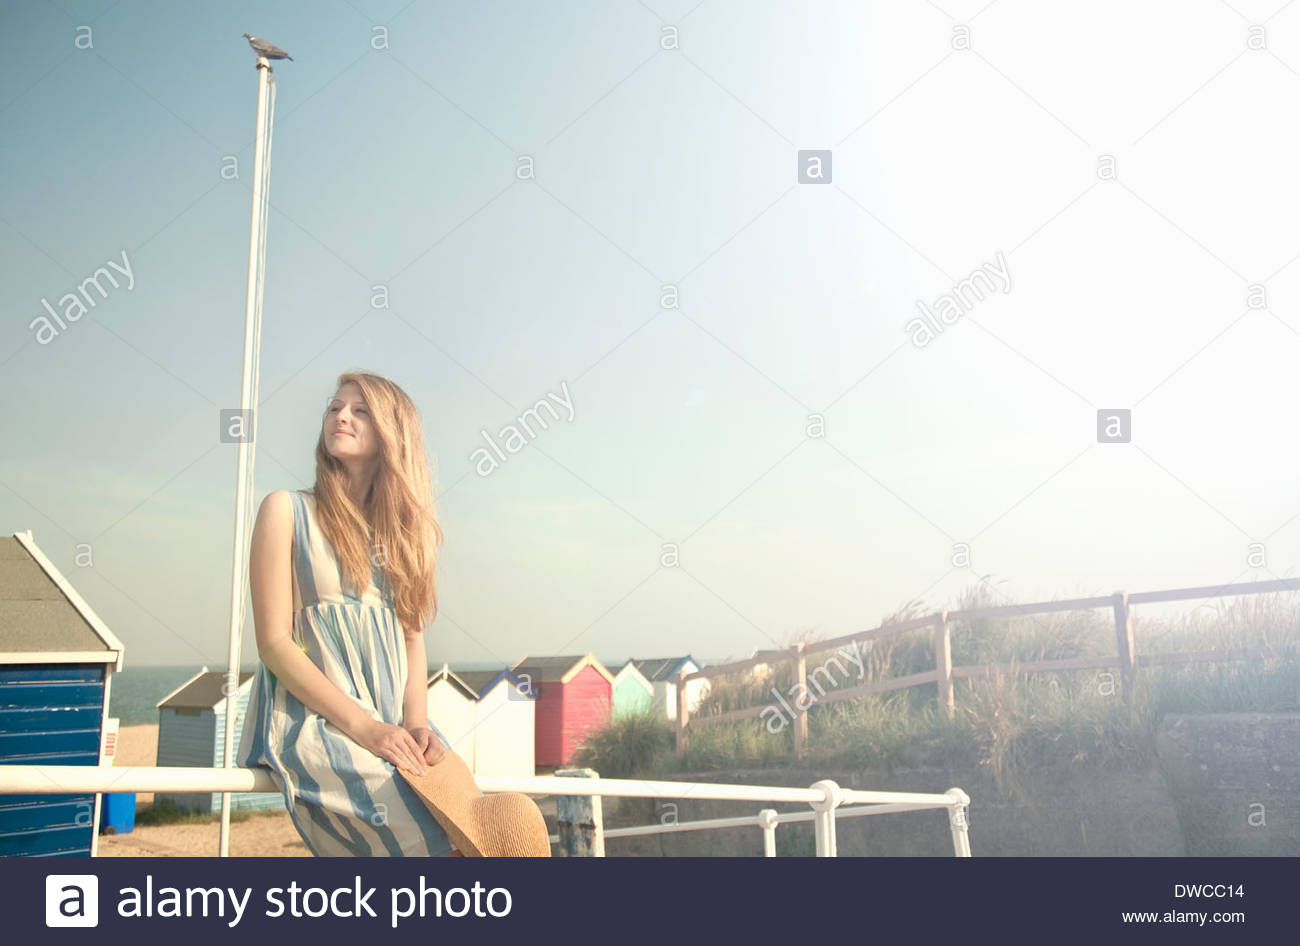 Teenage girl, beach huts in background, Southwold, Suffolk, UK - Stock Image